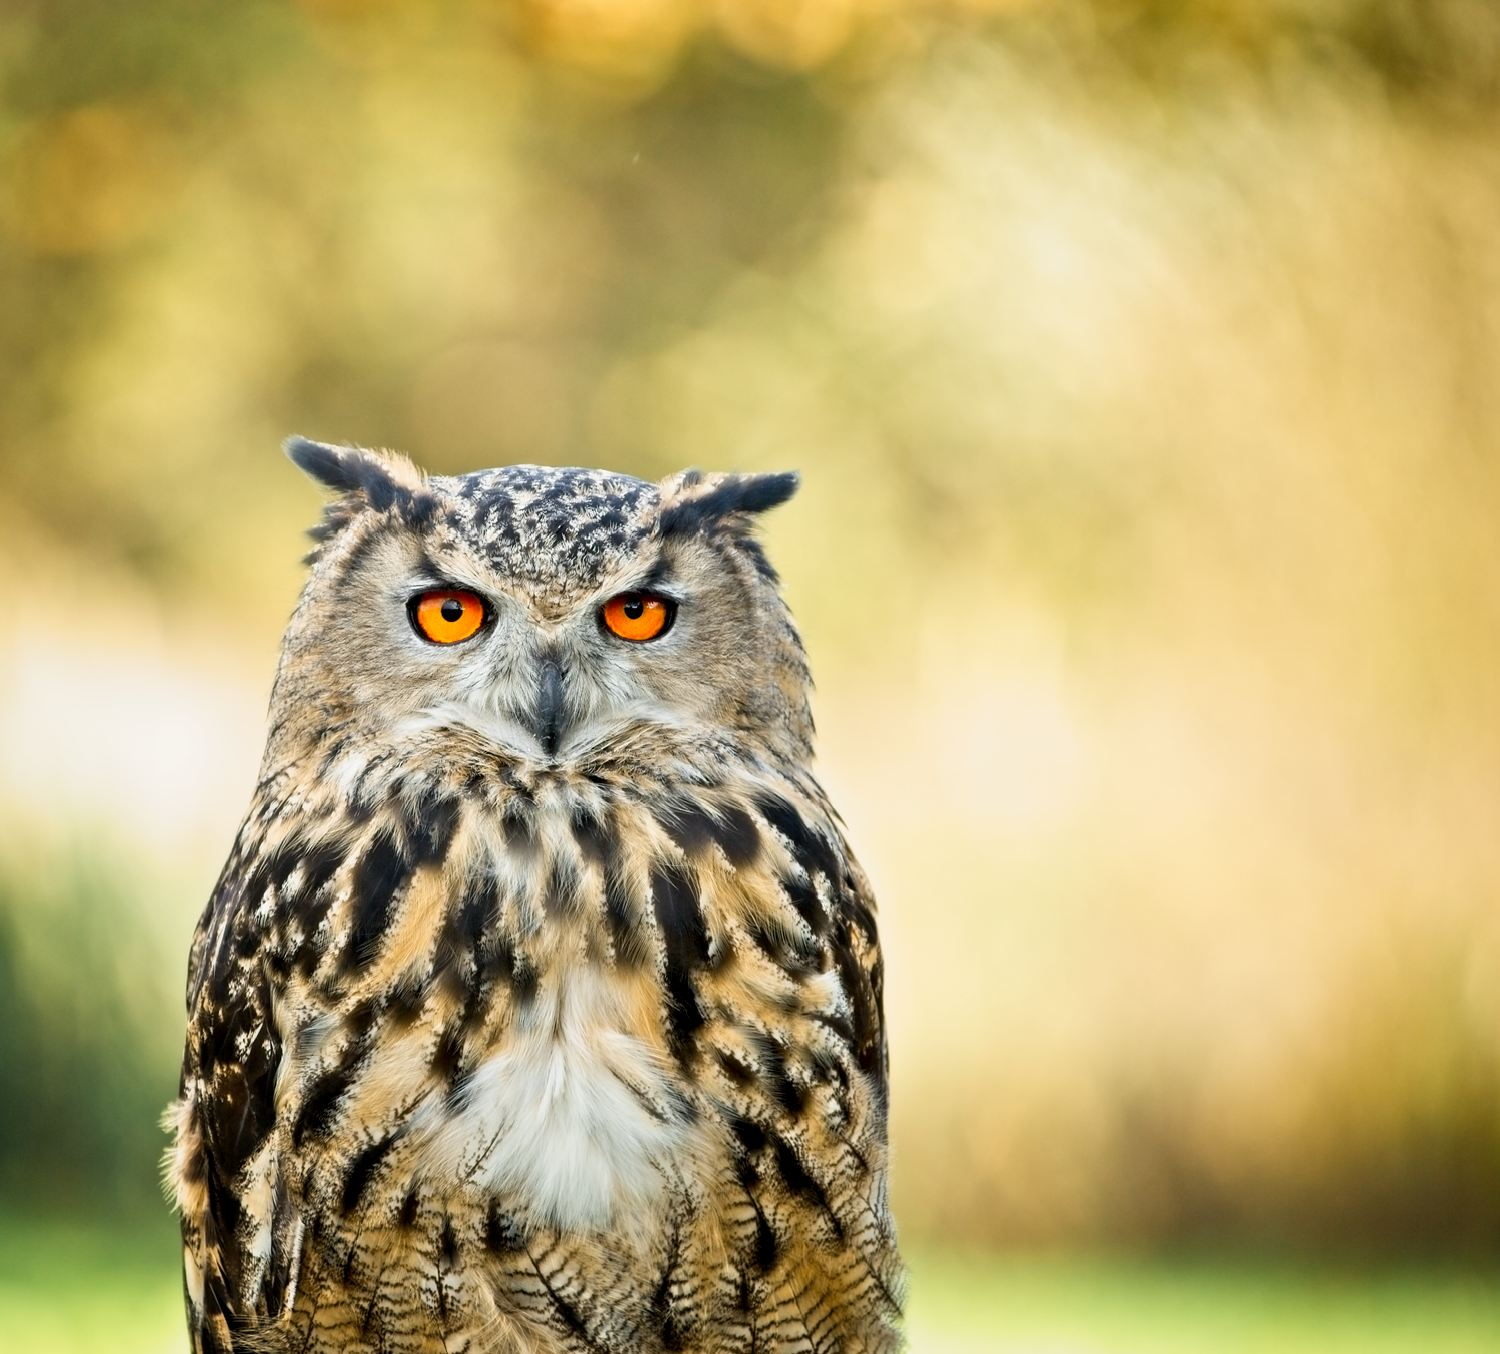 European Eagle Owl … - To say that Ethel is massive is an understatement – these birds can easily carry off a young deer.